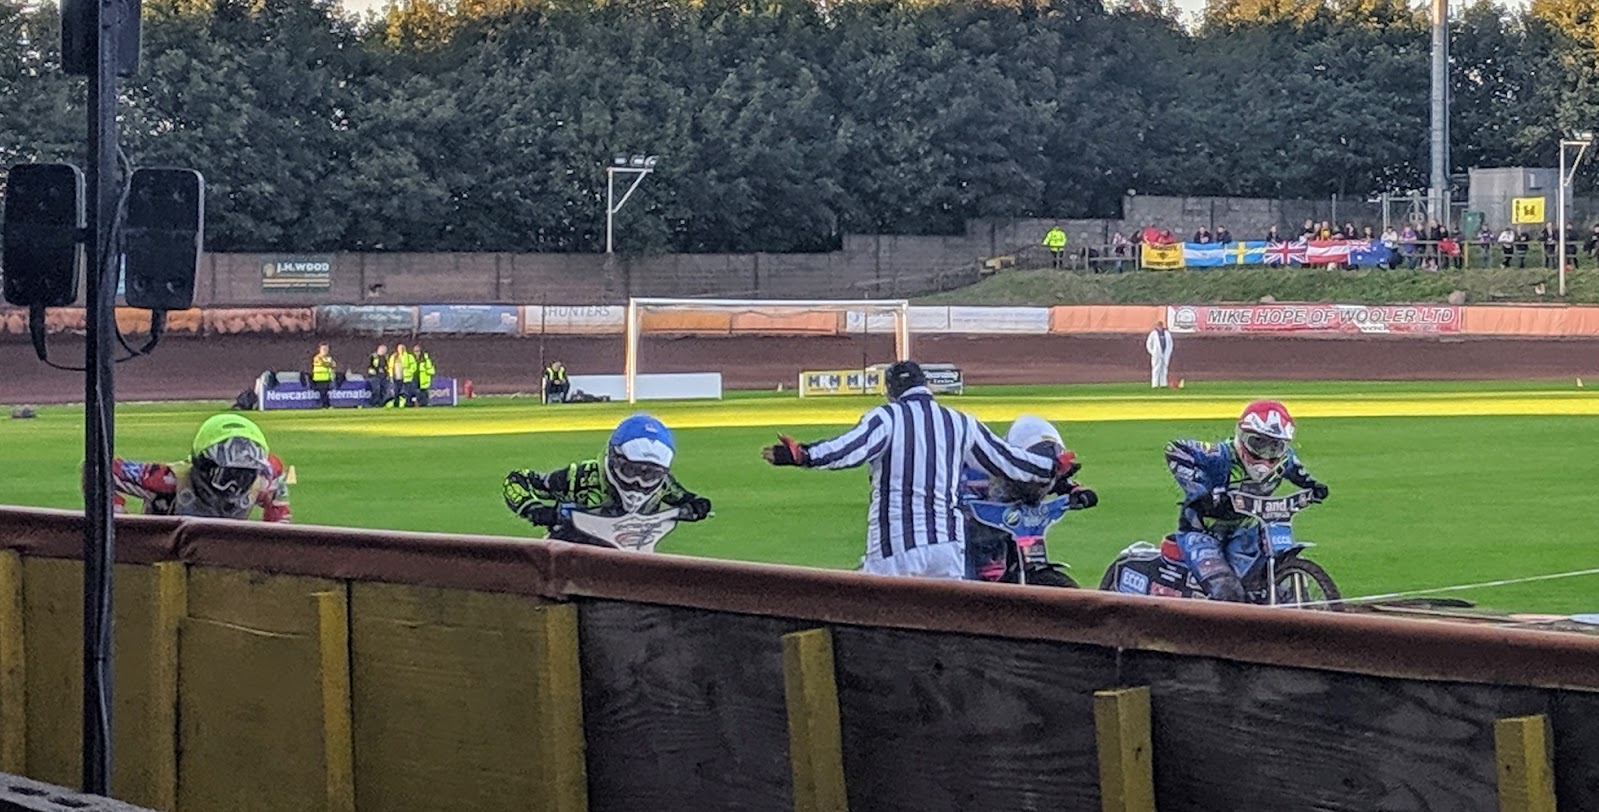 Things to do in Berwick - berwick speedway